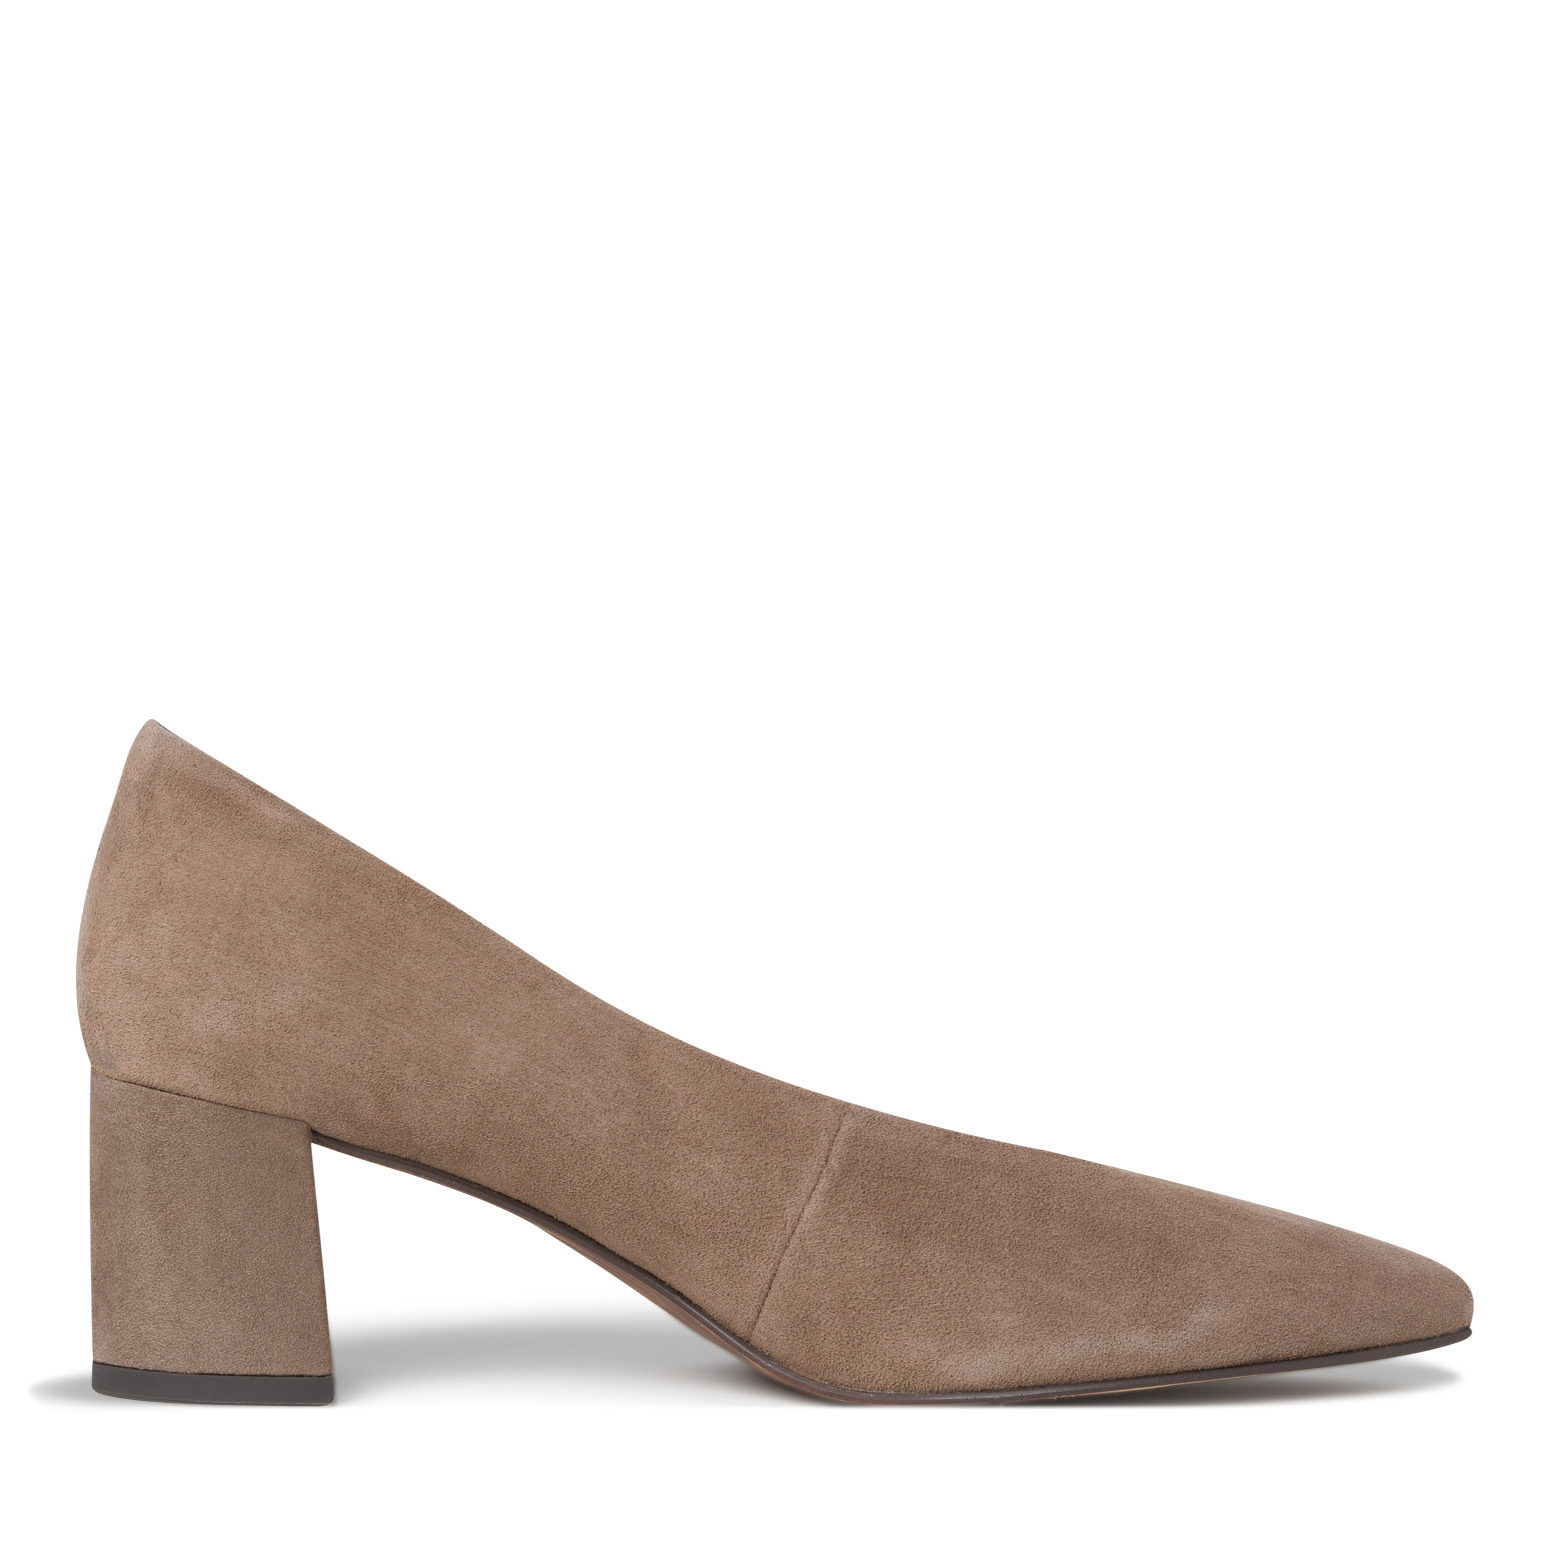 Leather Pumps - beige, TAUPE SUEDE, hi-res